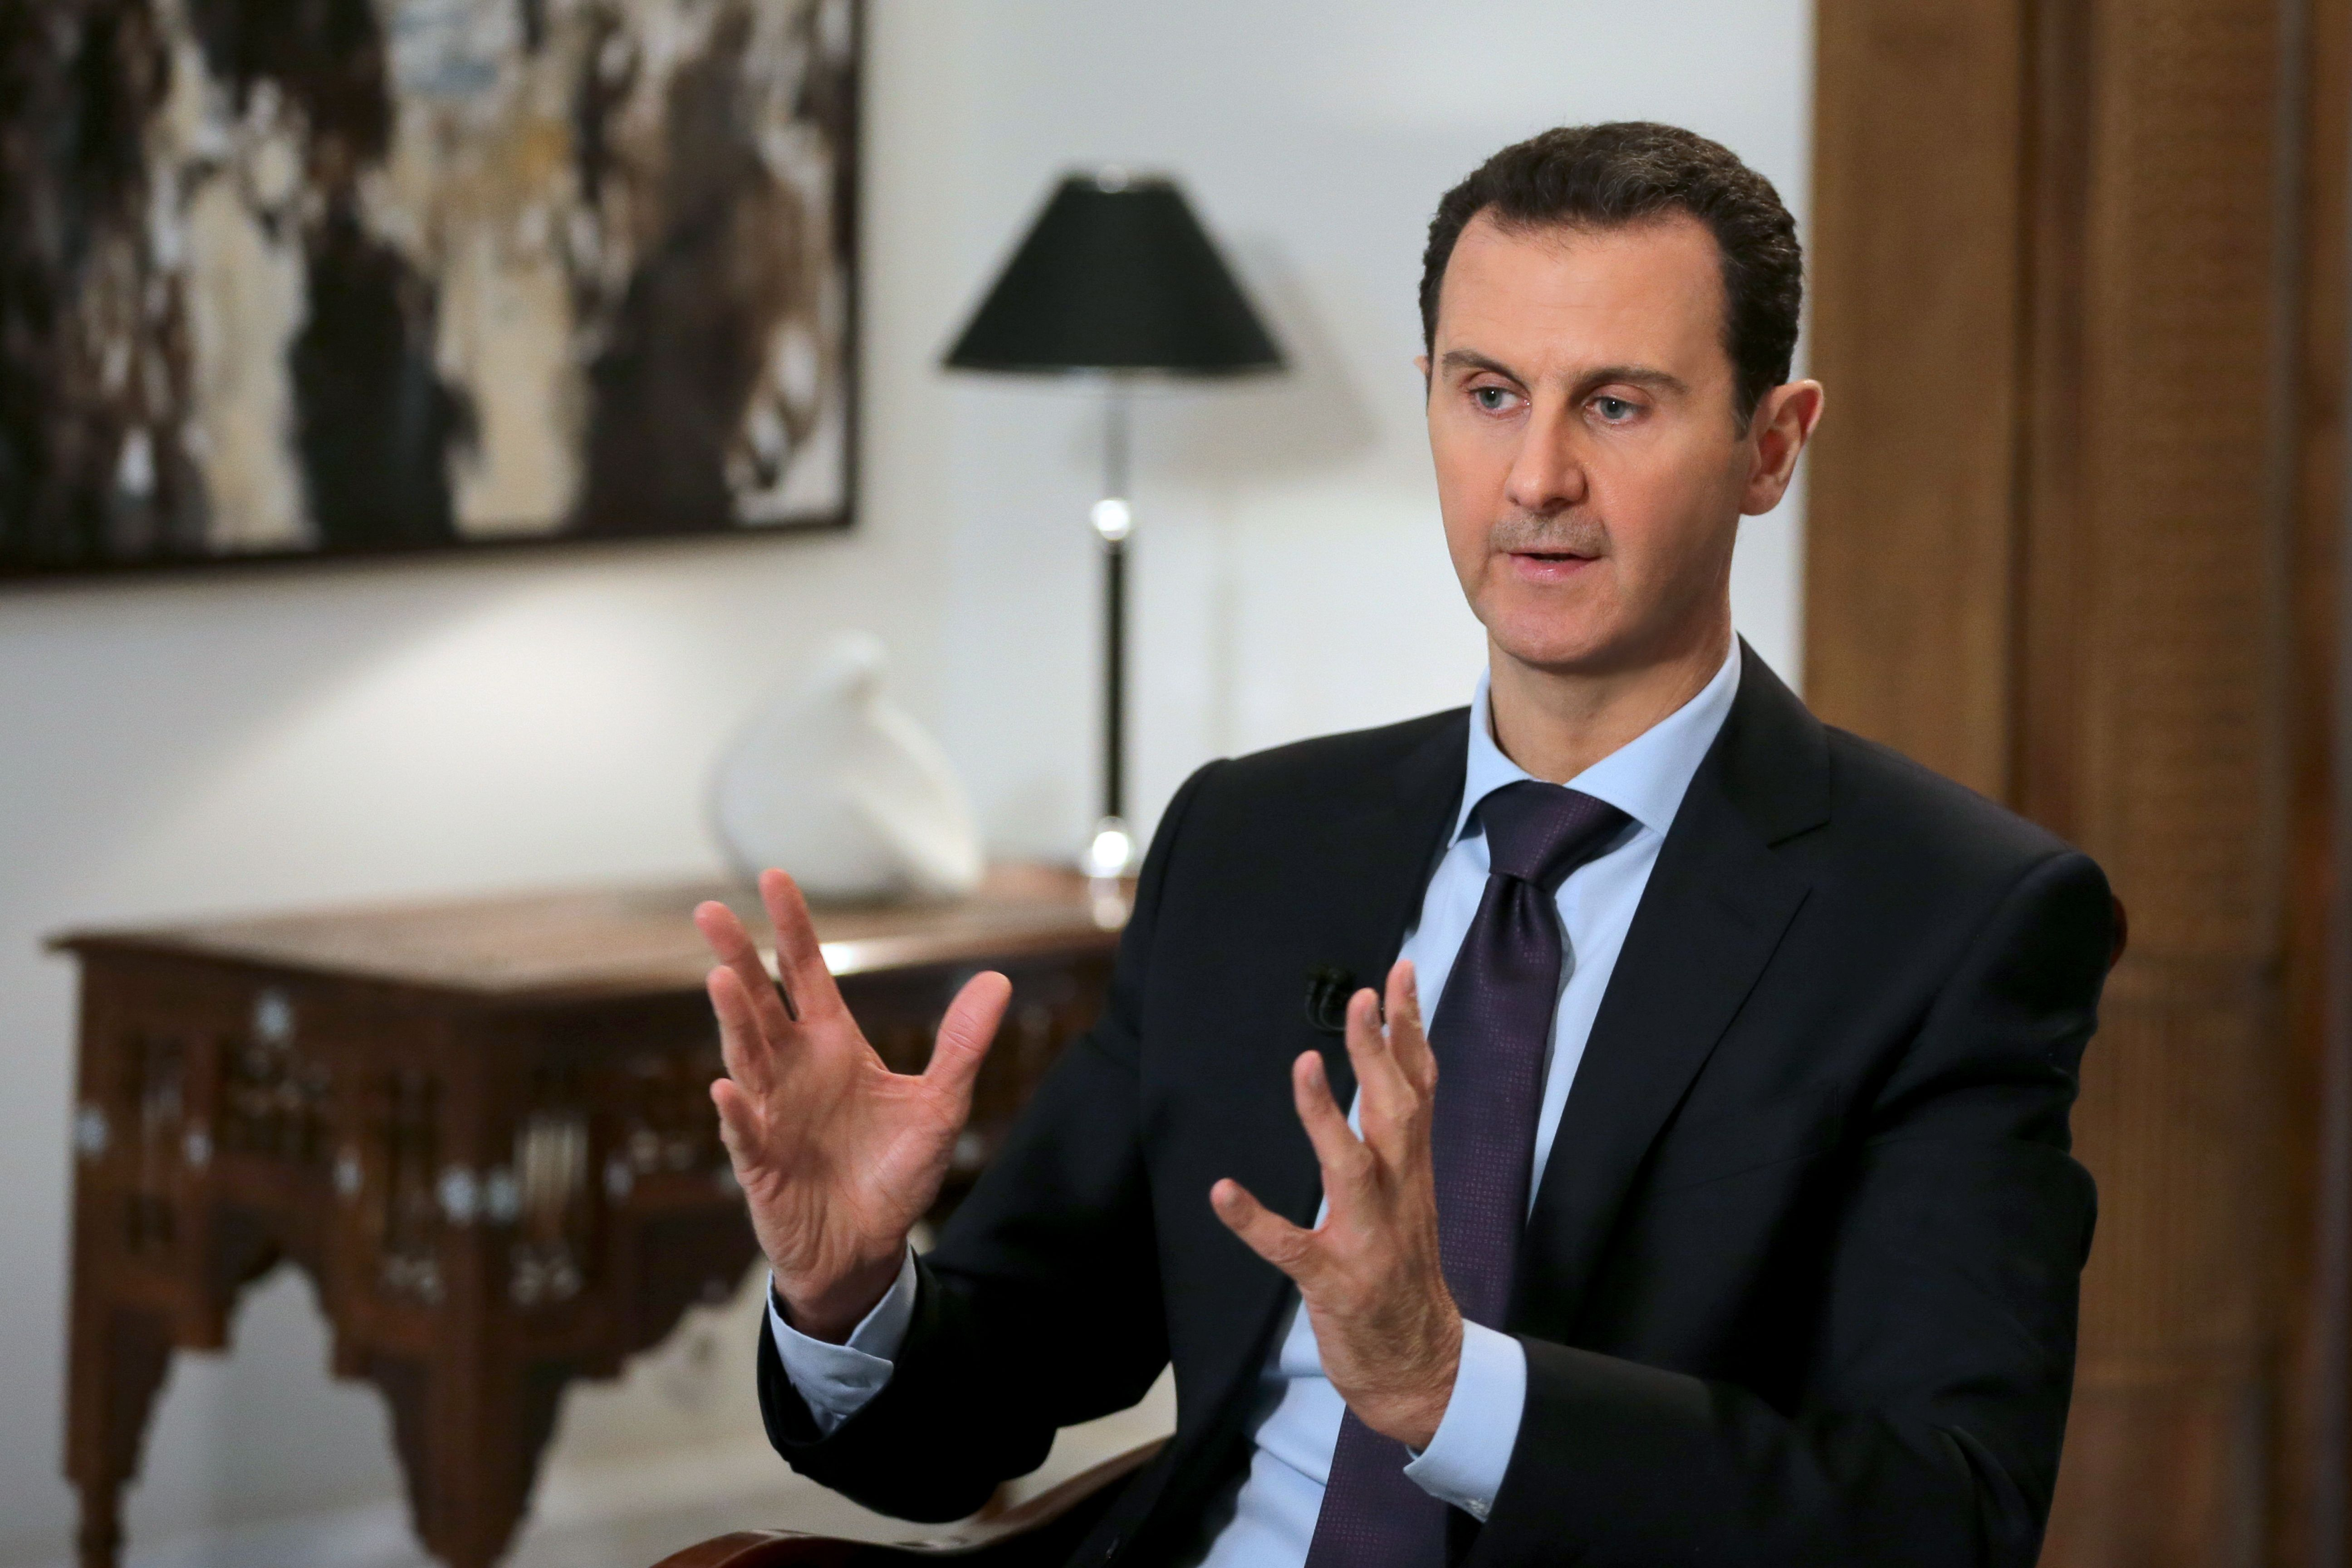 Syrian President Bashar al-Assad gestures during an exclusive interview in the capital Damascus on February 11, 2016.